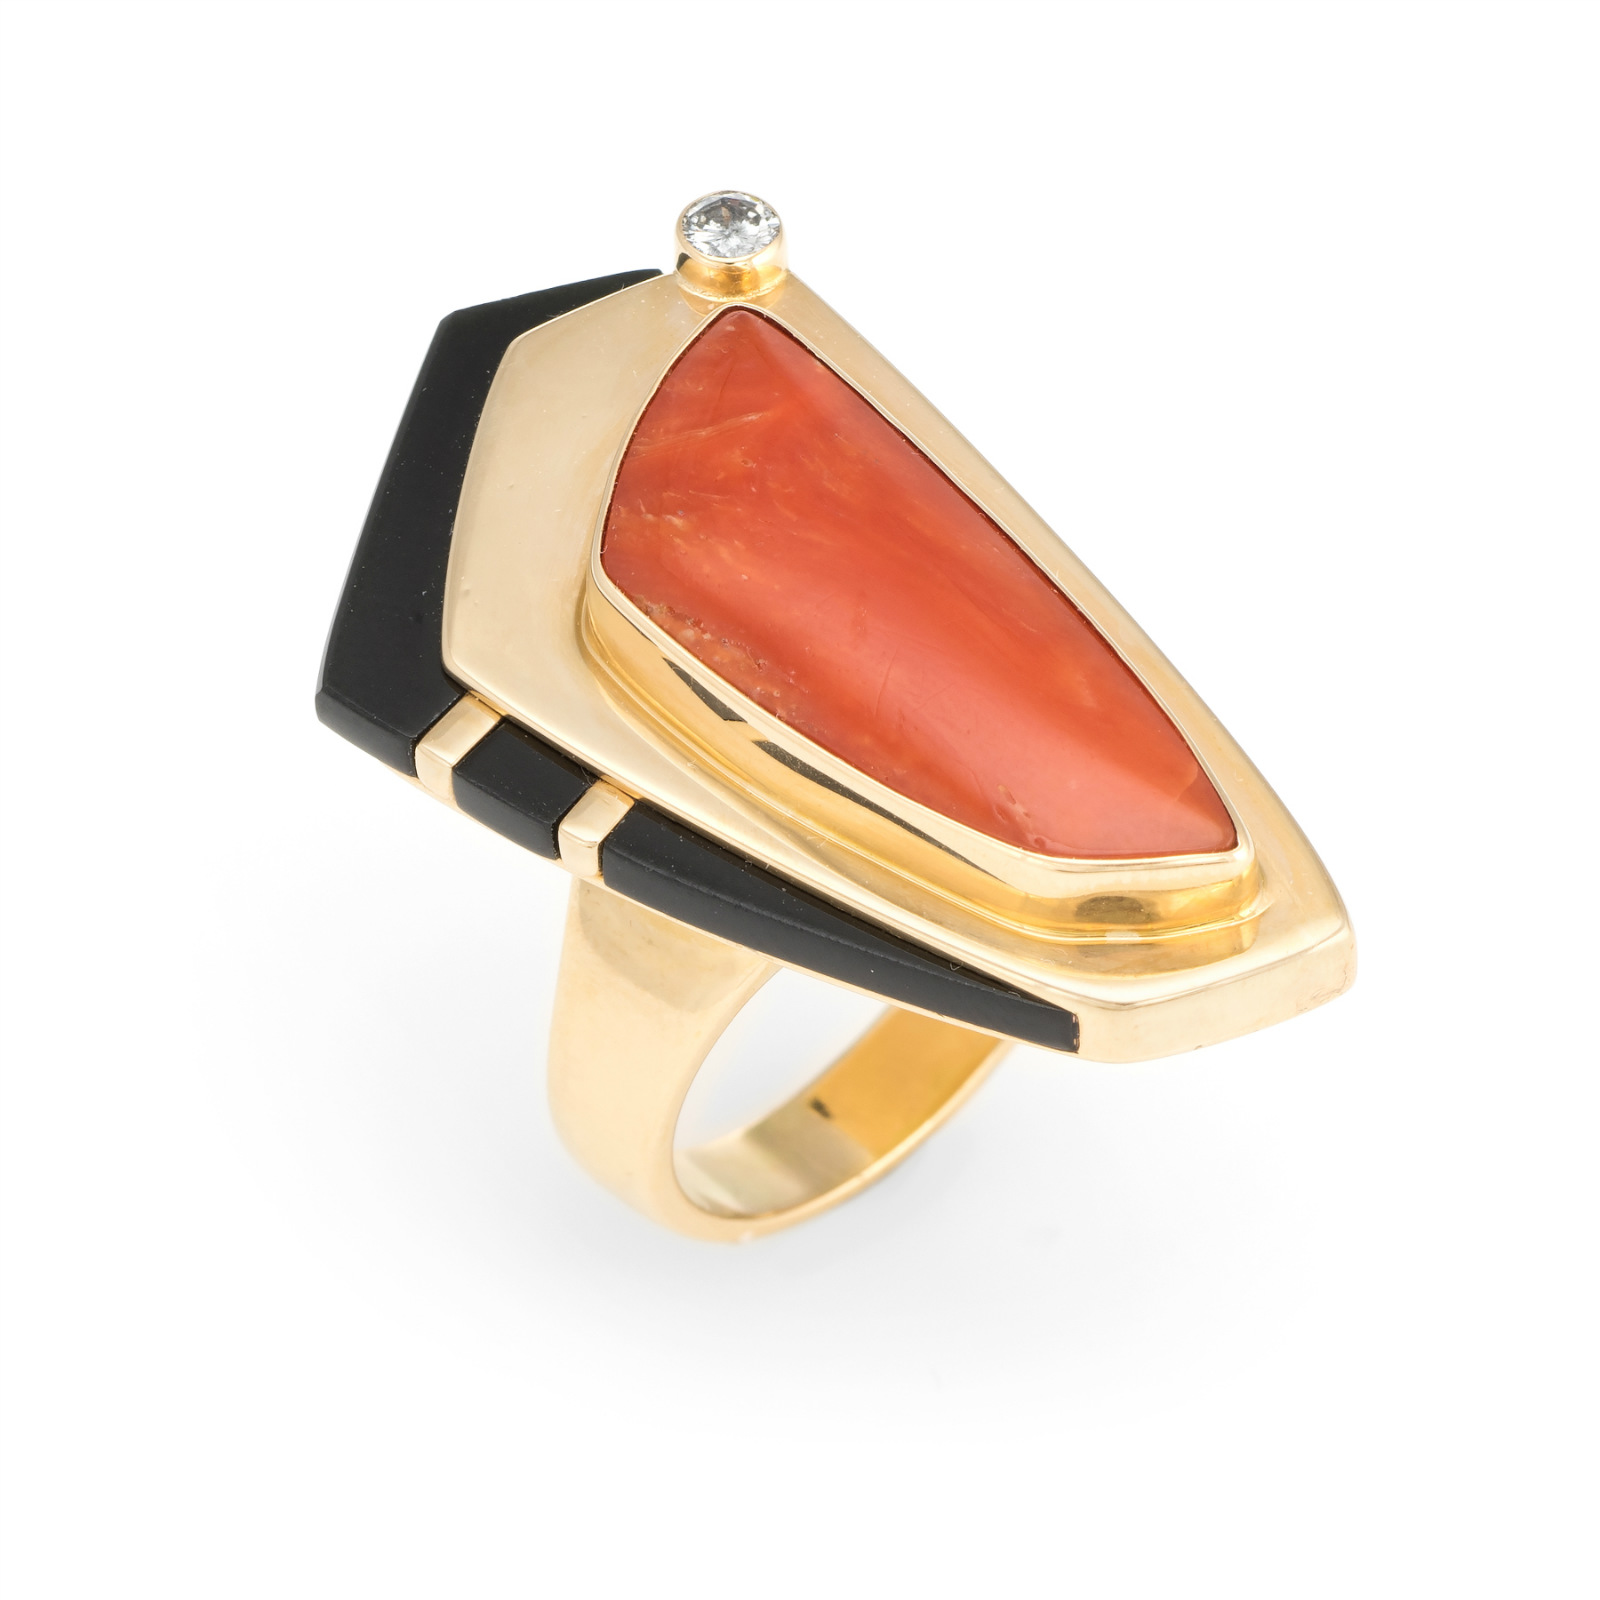 4e1251397 Details about Vintage Abstract Ring Coral Diamond Onyx 14k Yellow Gold  Cocktail Jewelry Estate